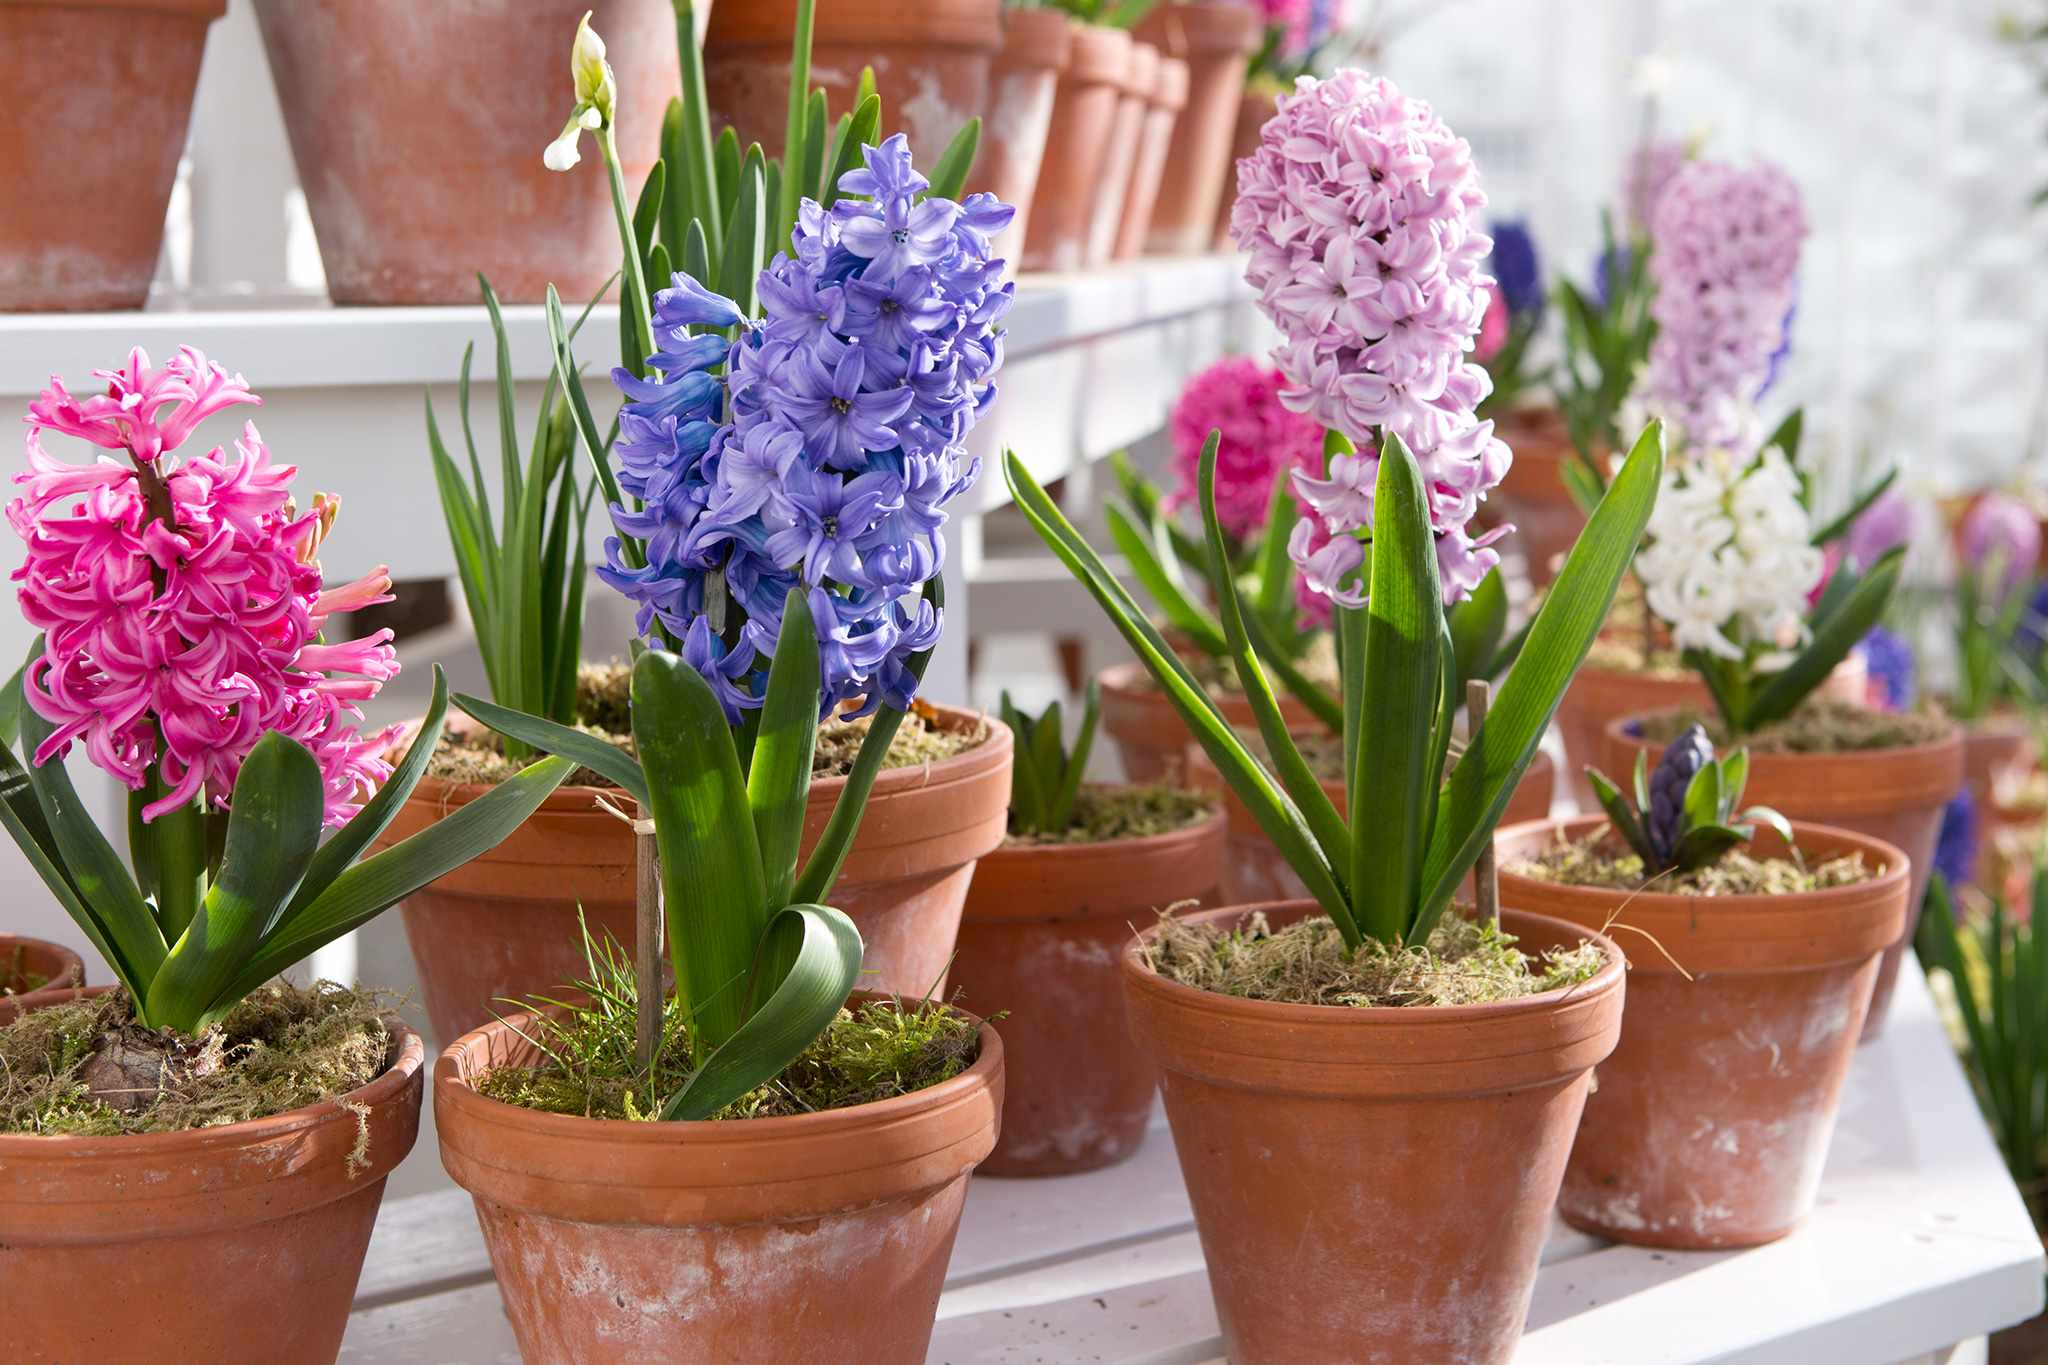 Hyacinths in pots